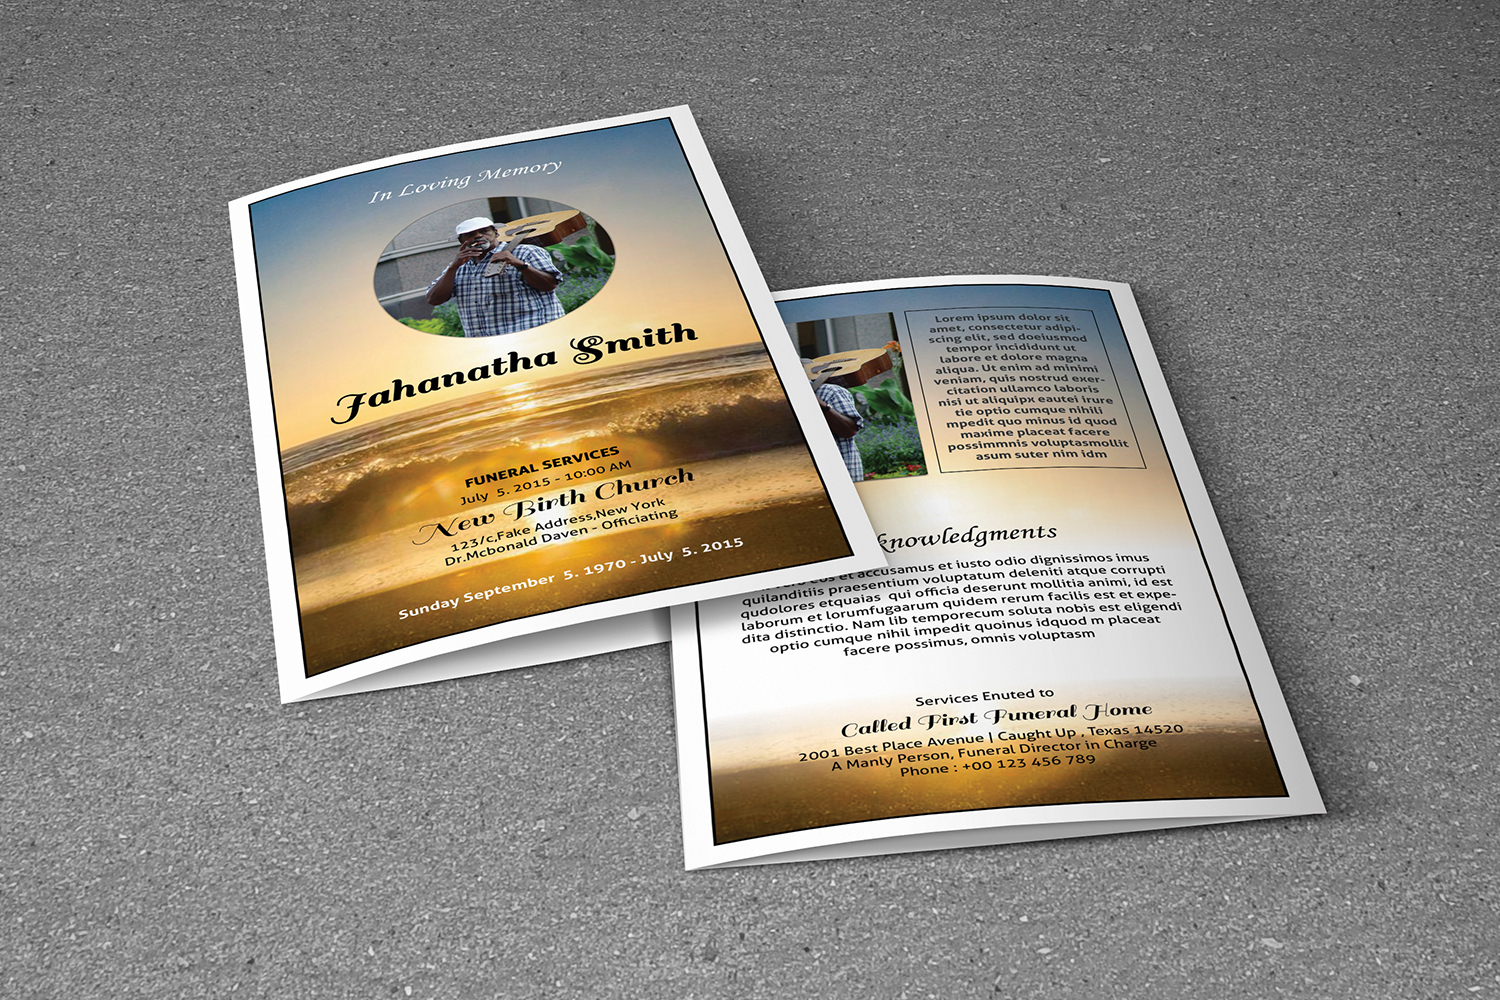 Printable Funeral Program Template example image 3